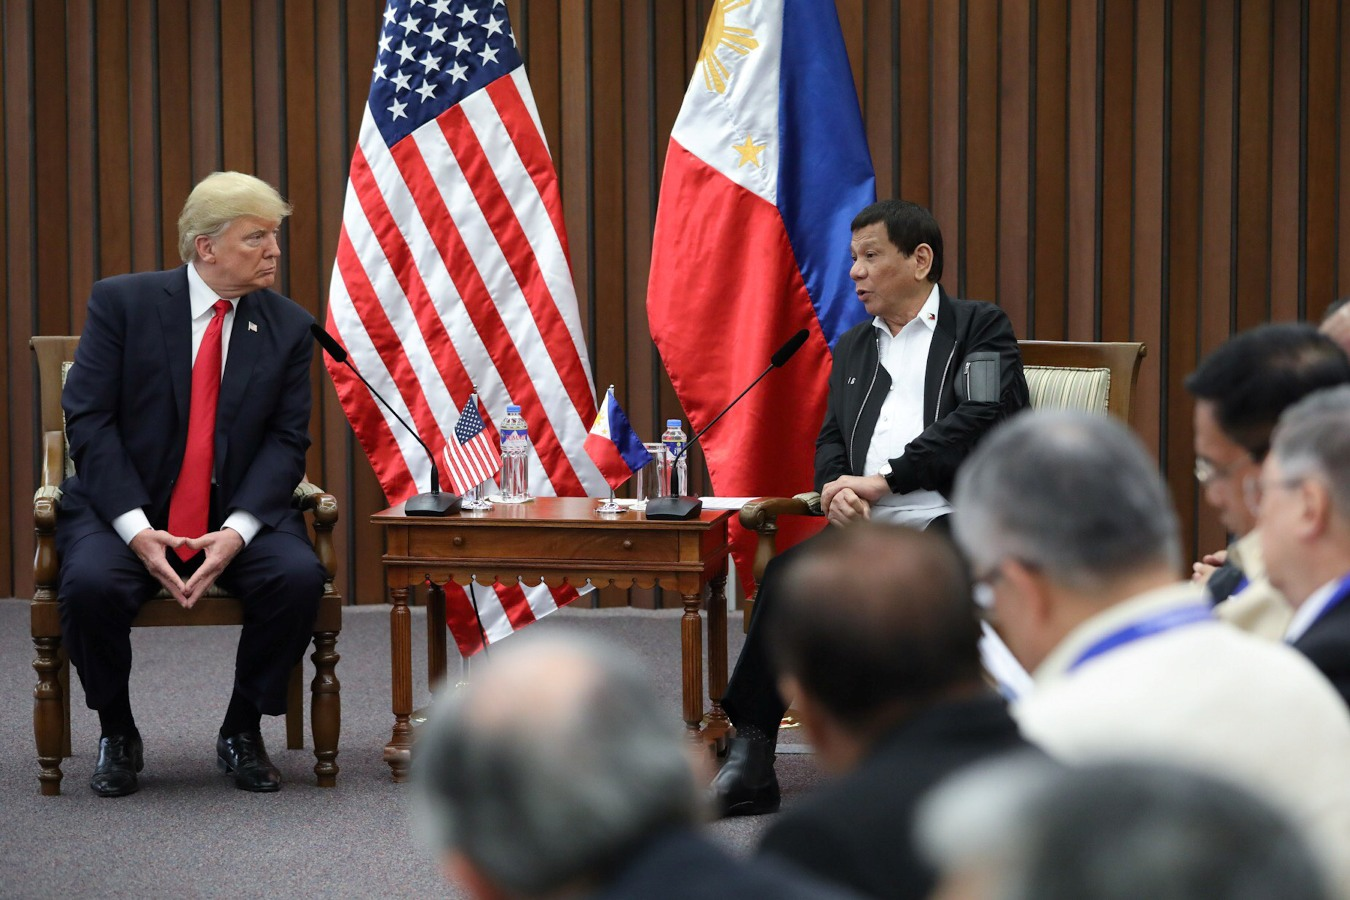 FILE: President Rodrigo Roa Duterte and US President Donald Trump discuss matters during a bilateral meeting at the Philippine International Convention Center in Pasay City on November 13, 2017. ROBINSON NIÑAL JR./PRESIDENTIAL PHOTO